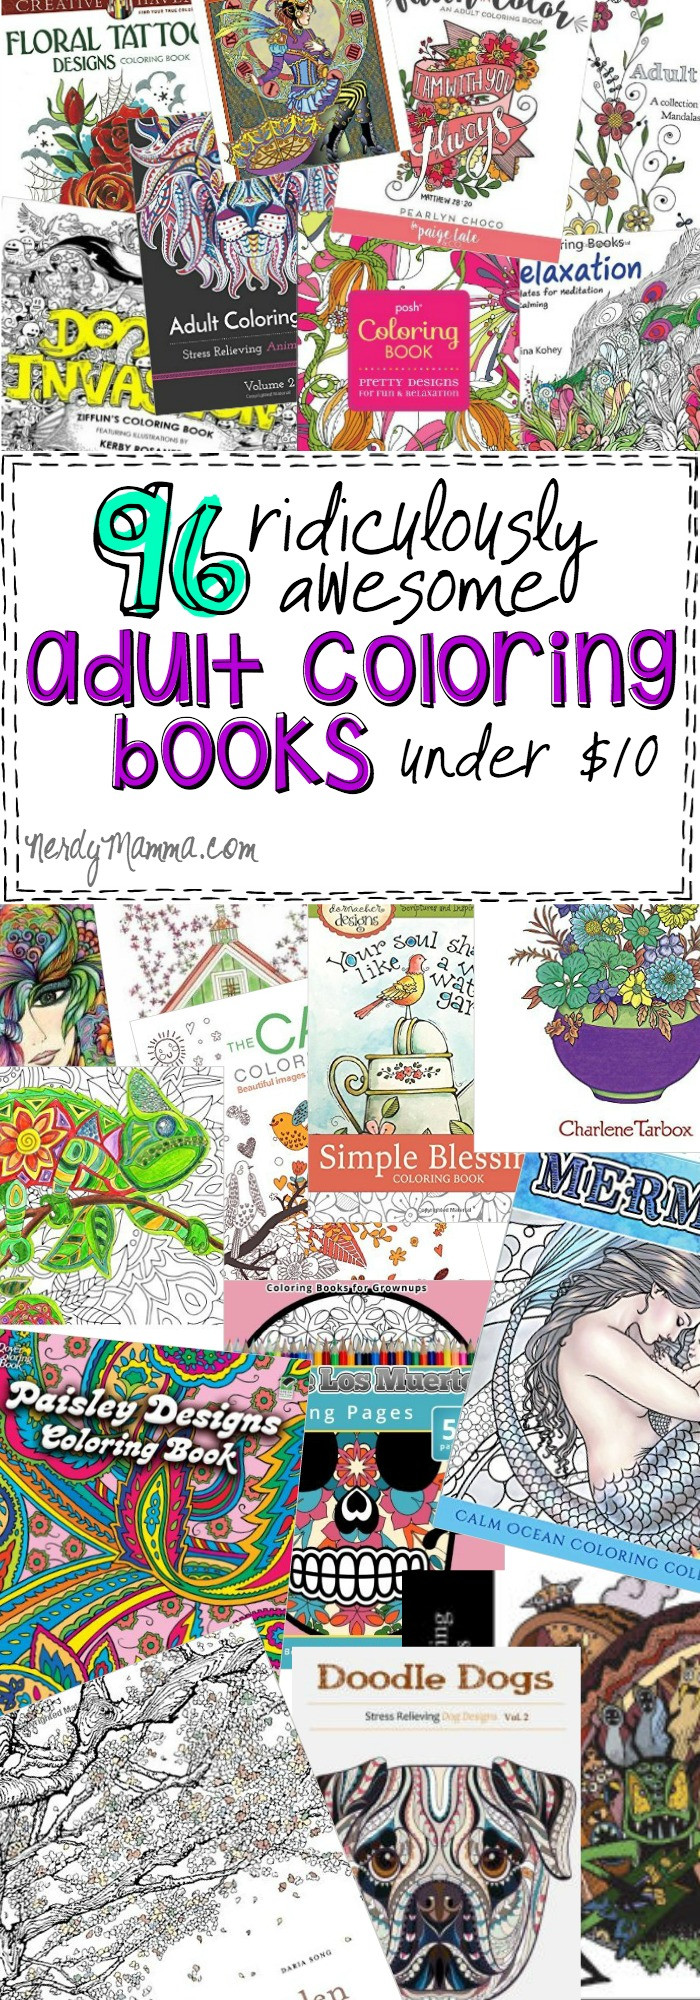 Discount Adult Coloring Books  96 Ridiculously Awesome Adult Coloring Books Under $10